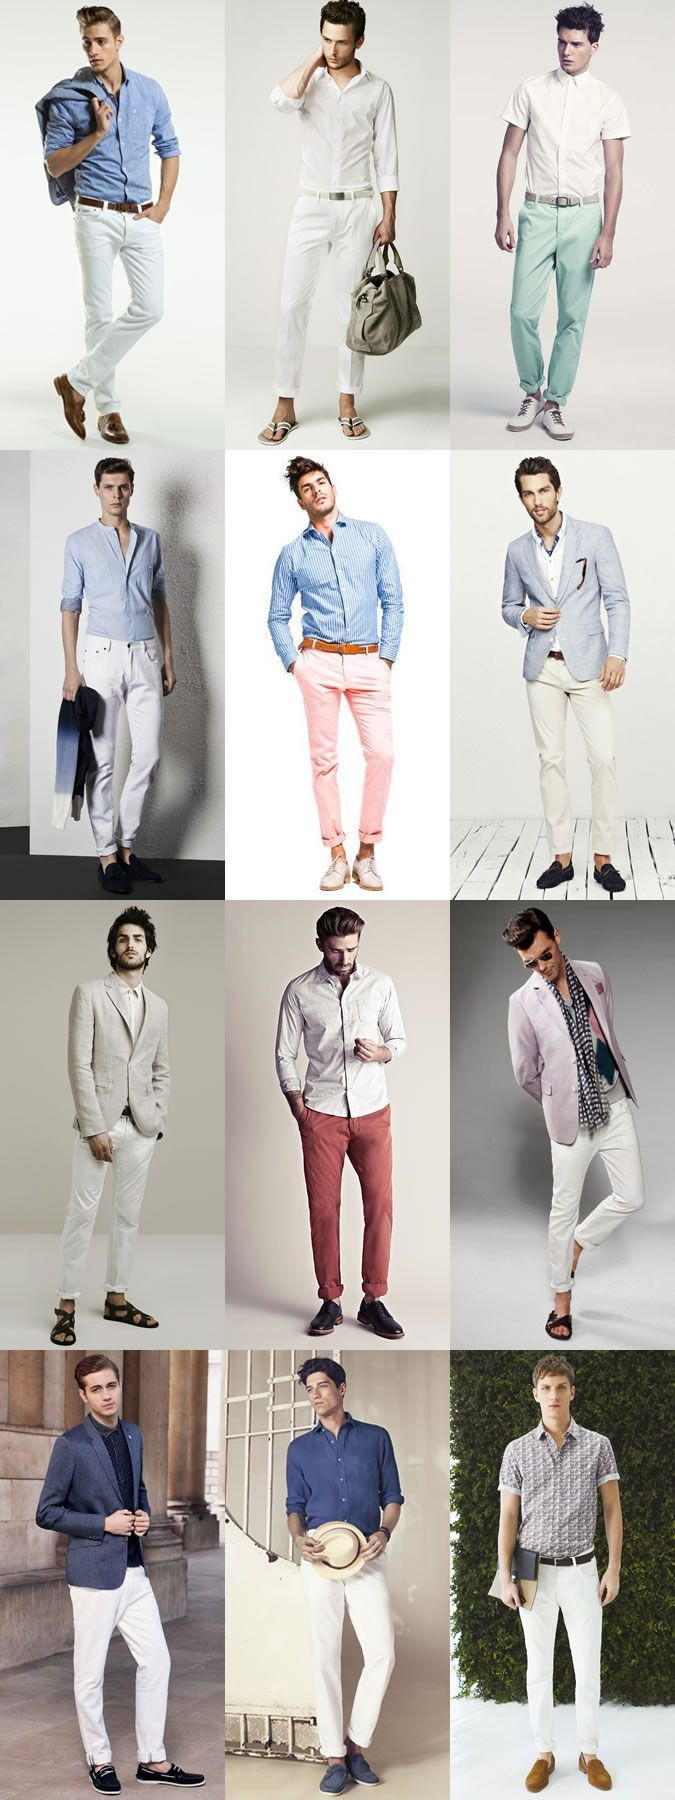 Men S Summer Wedding Guide How To Dress For A The Abroad